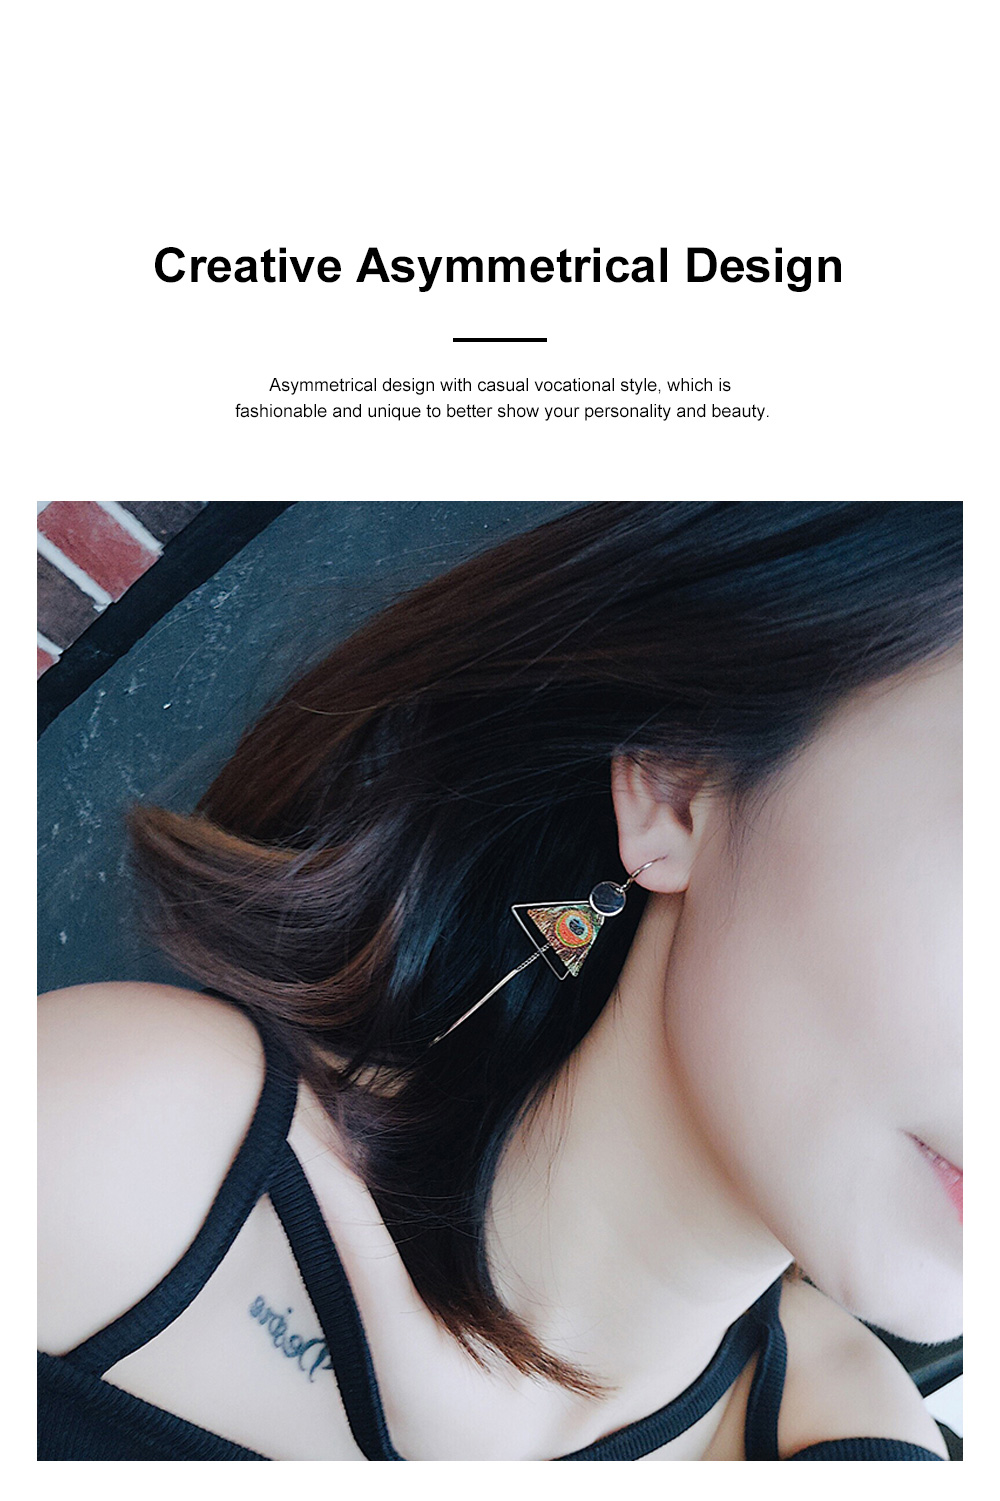 Elegant Holiday Earrings for Women Vocation Style Asymmetrical Earrings with Daisy Peacock Feather Pattern 3